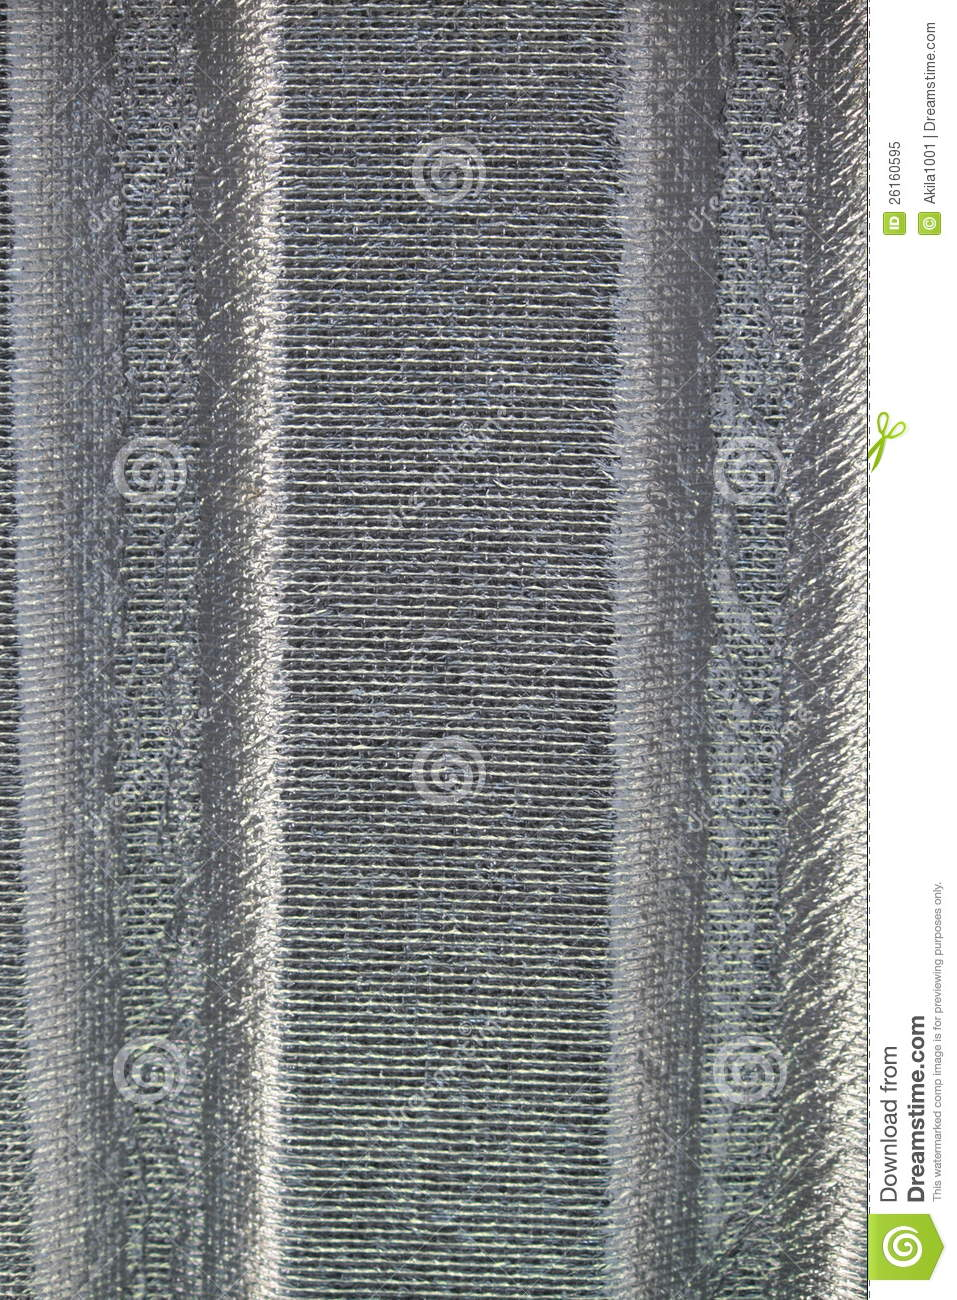 Insulation Texture Royalty Free Stock Photo - Image: 26160595